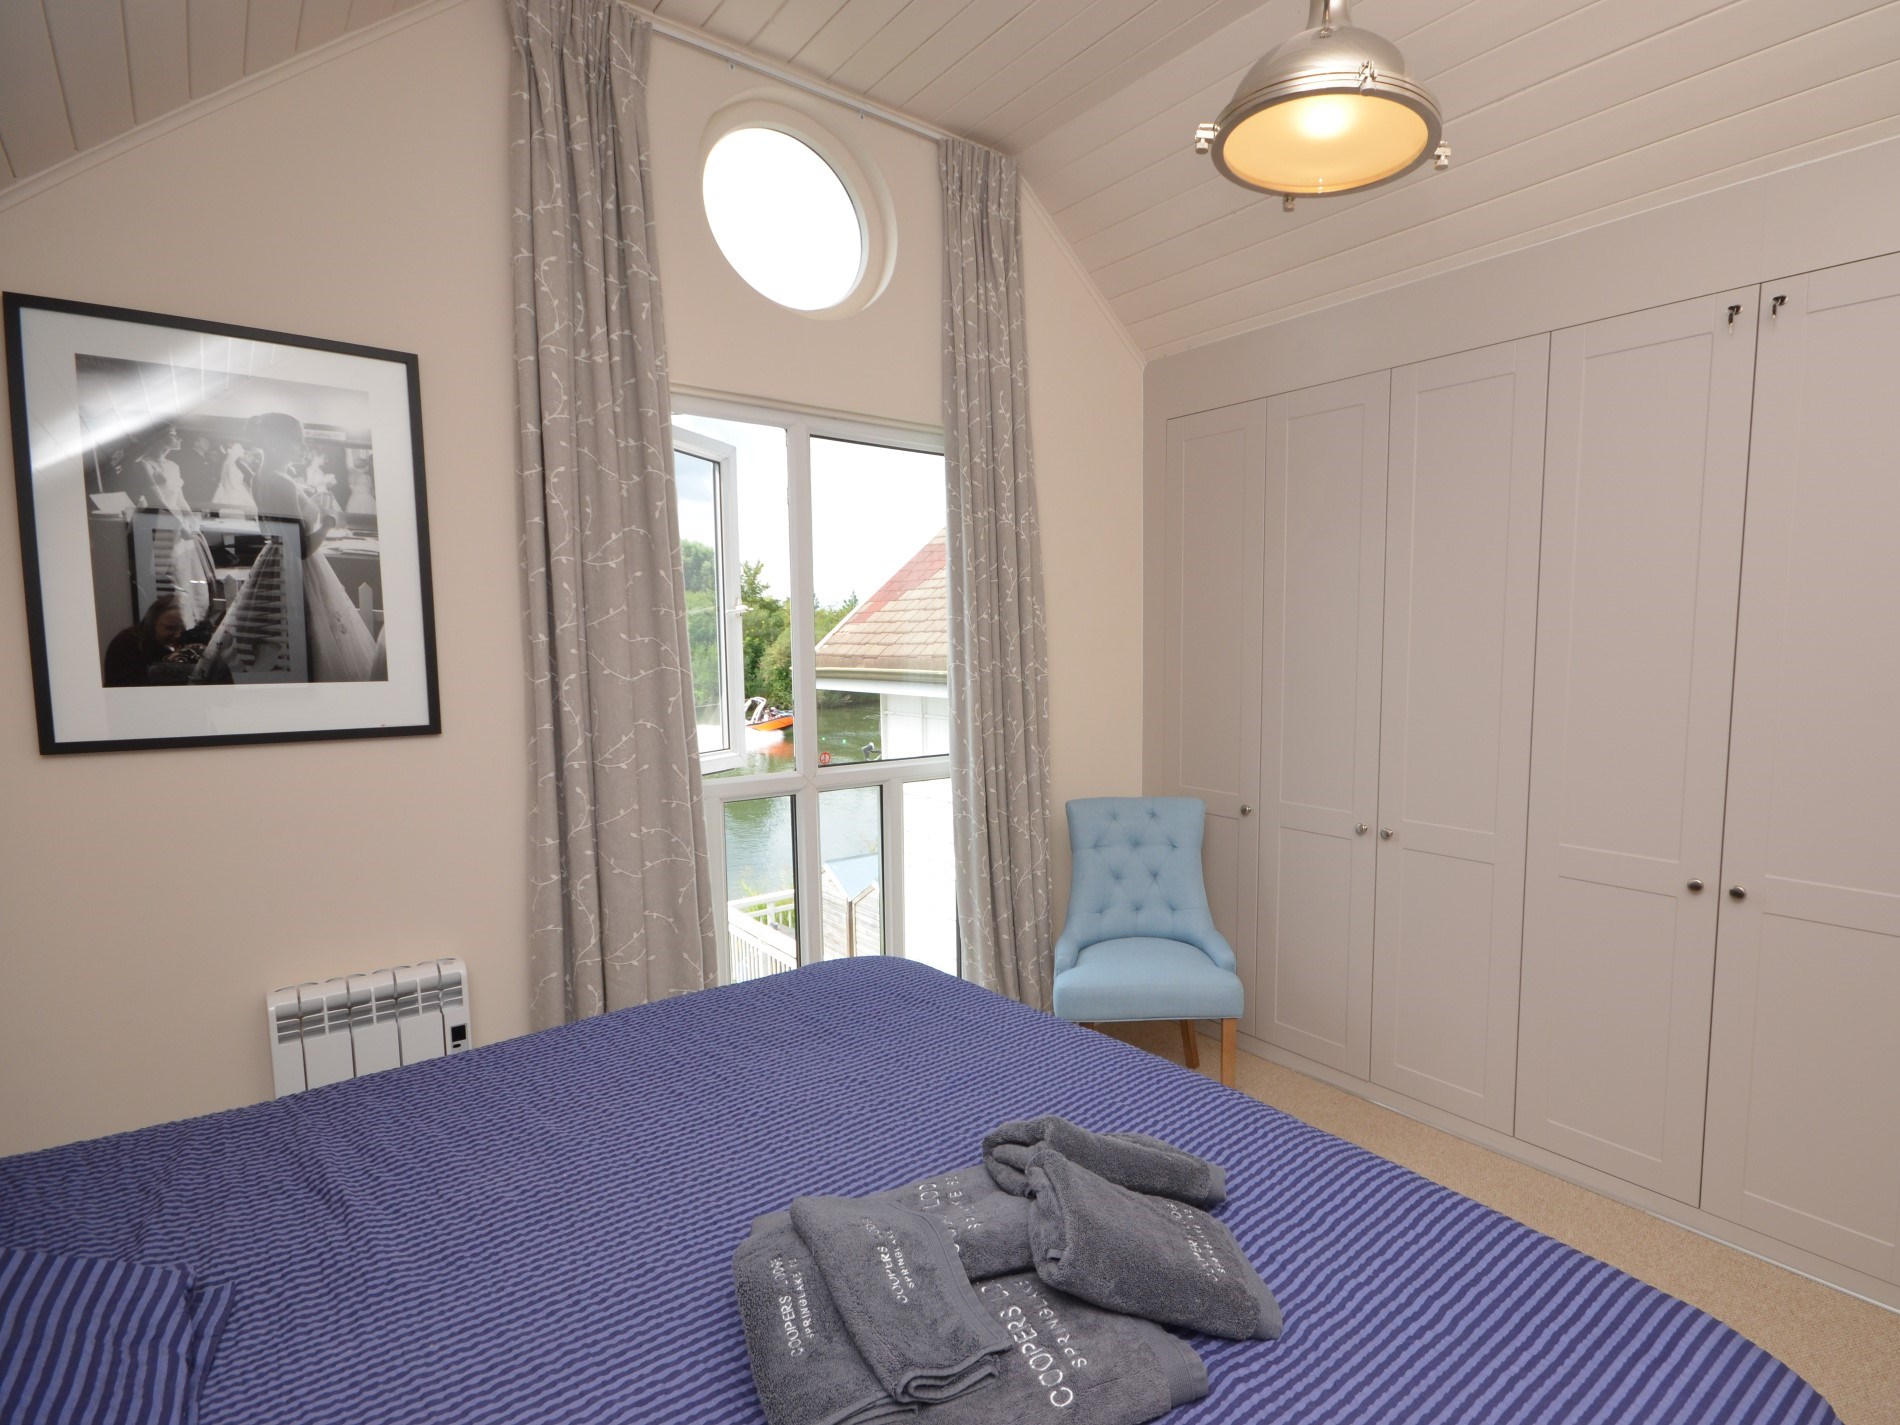 A wonderful and spacious bedroom